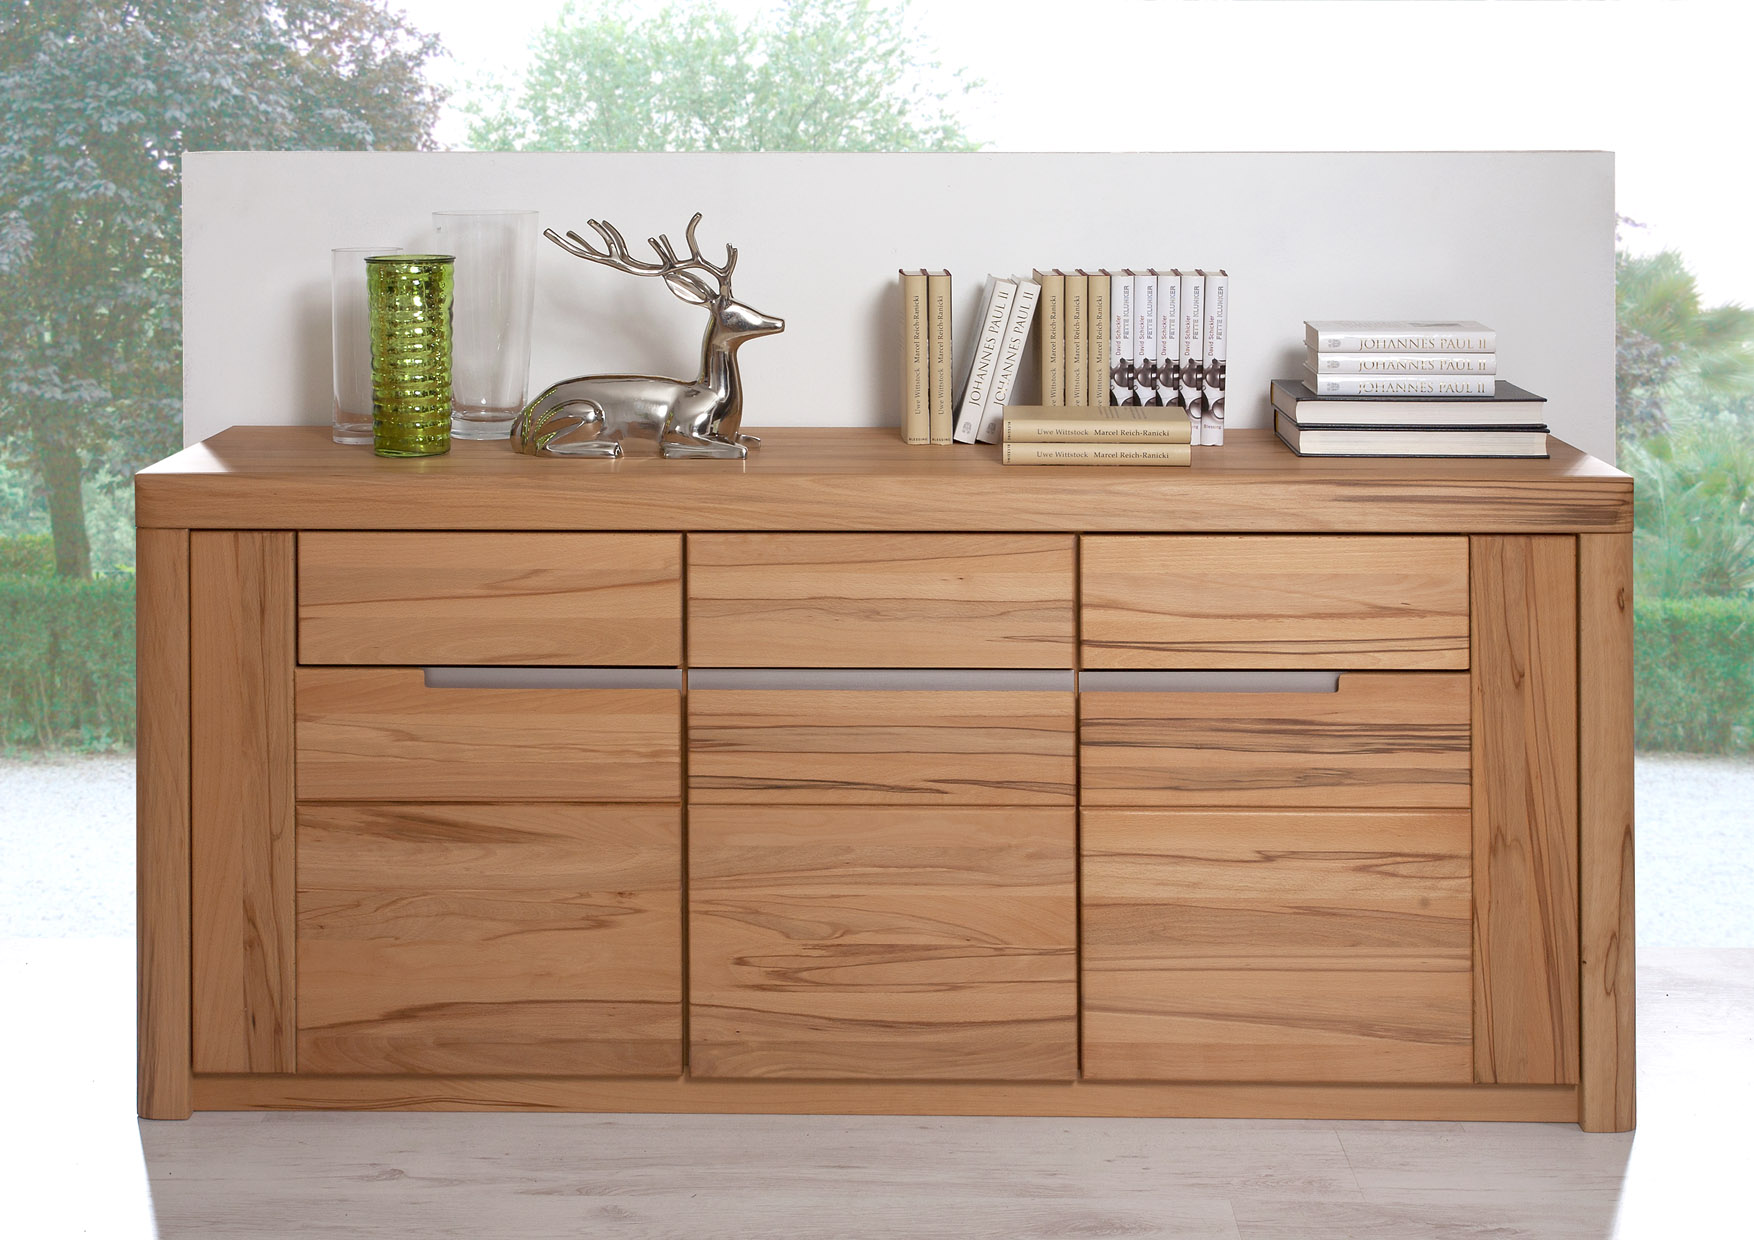 Sideboard anrichte kommode schrank kernbuche massiv solido for Sideboard 2 m